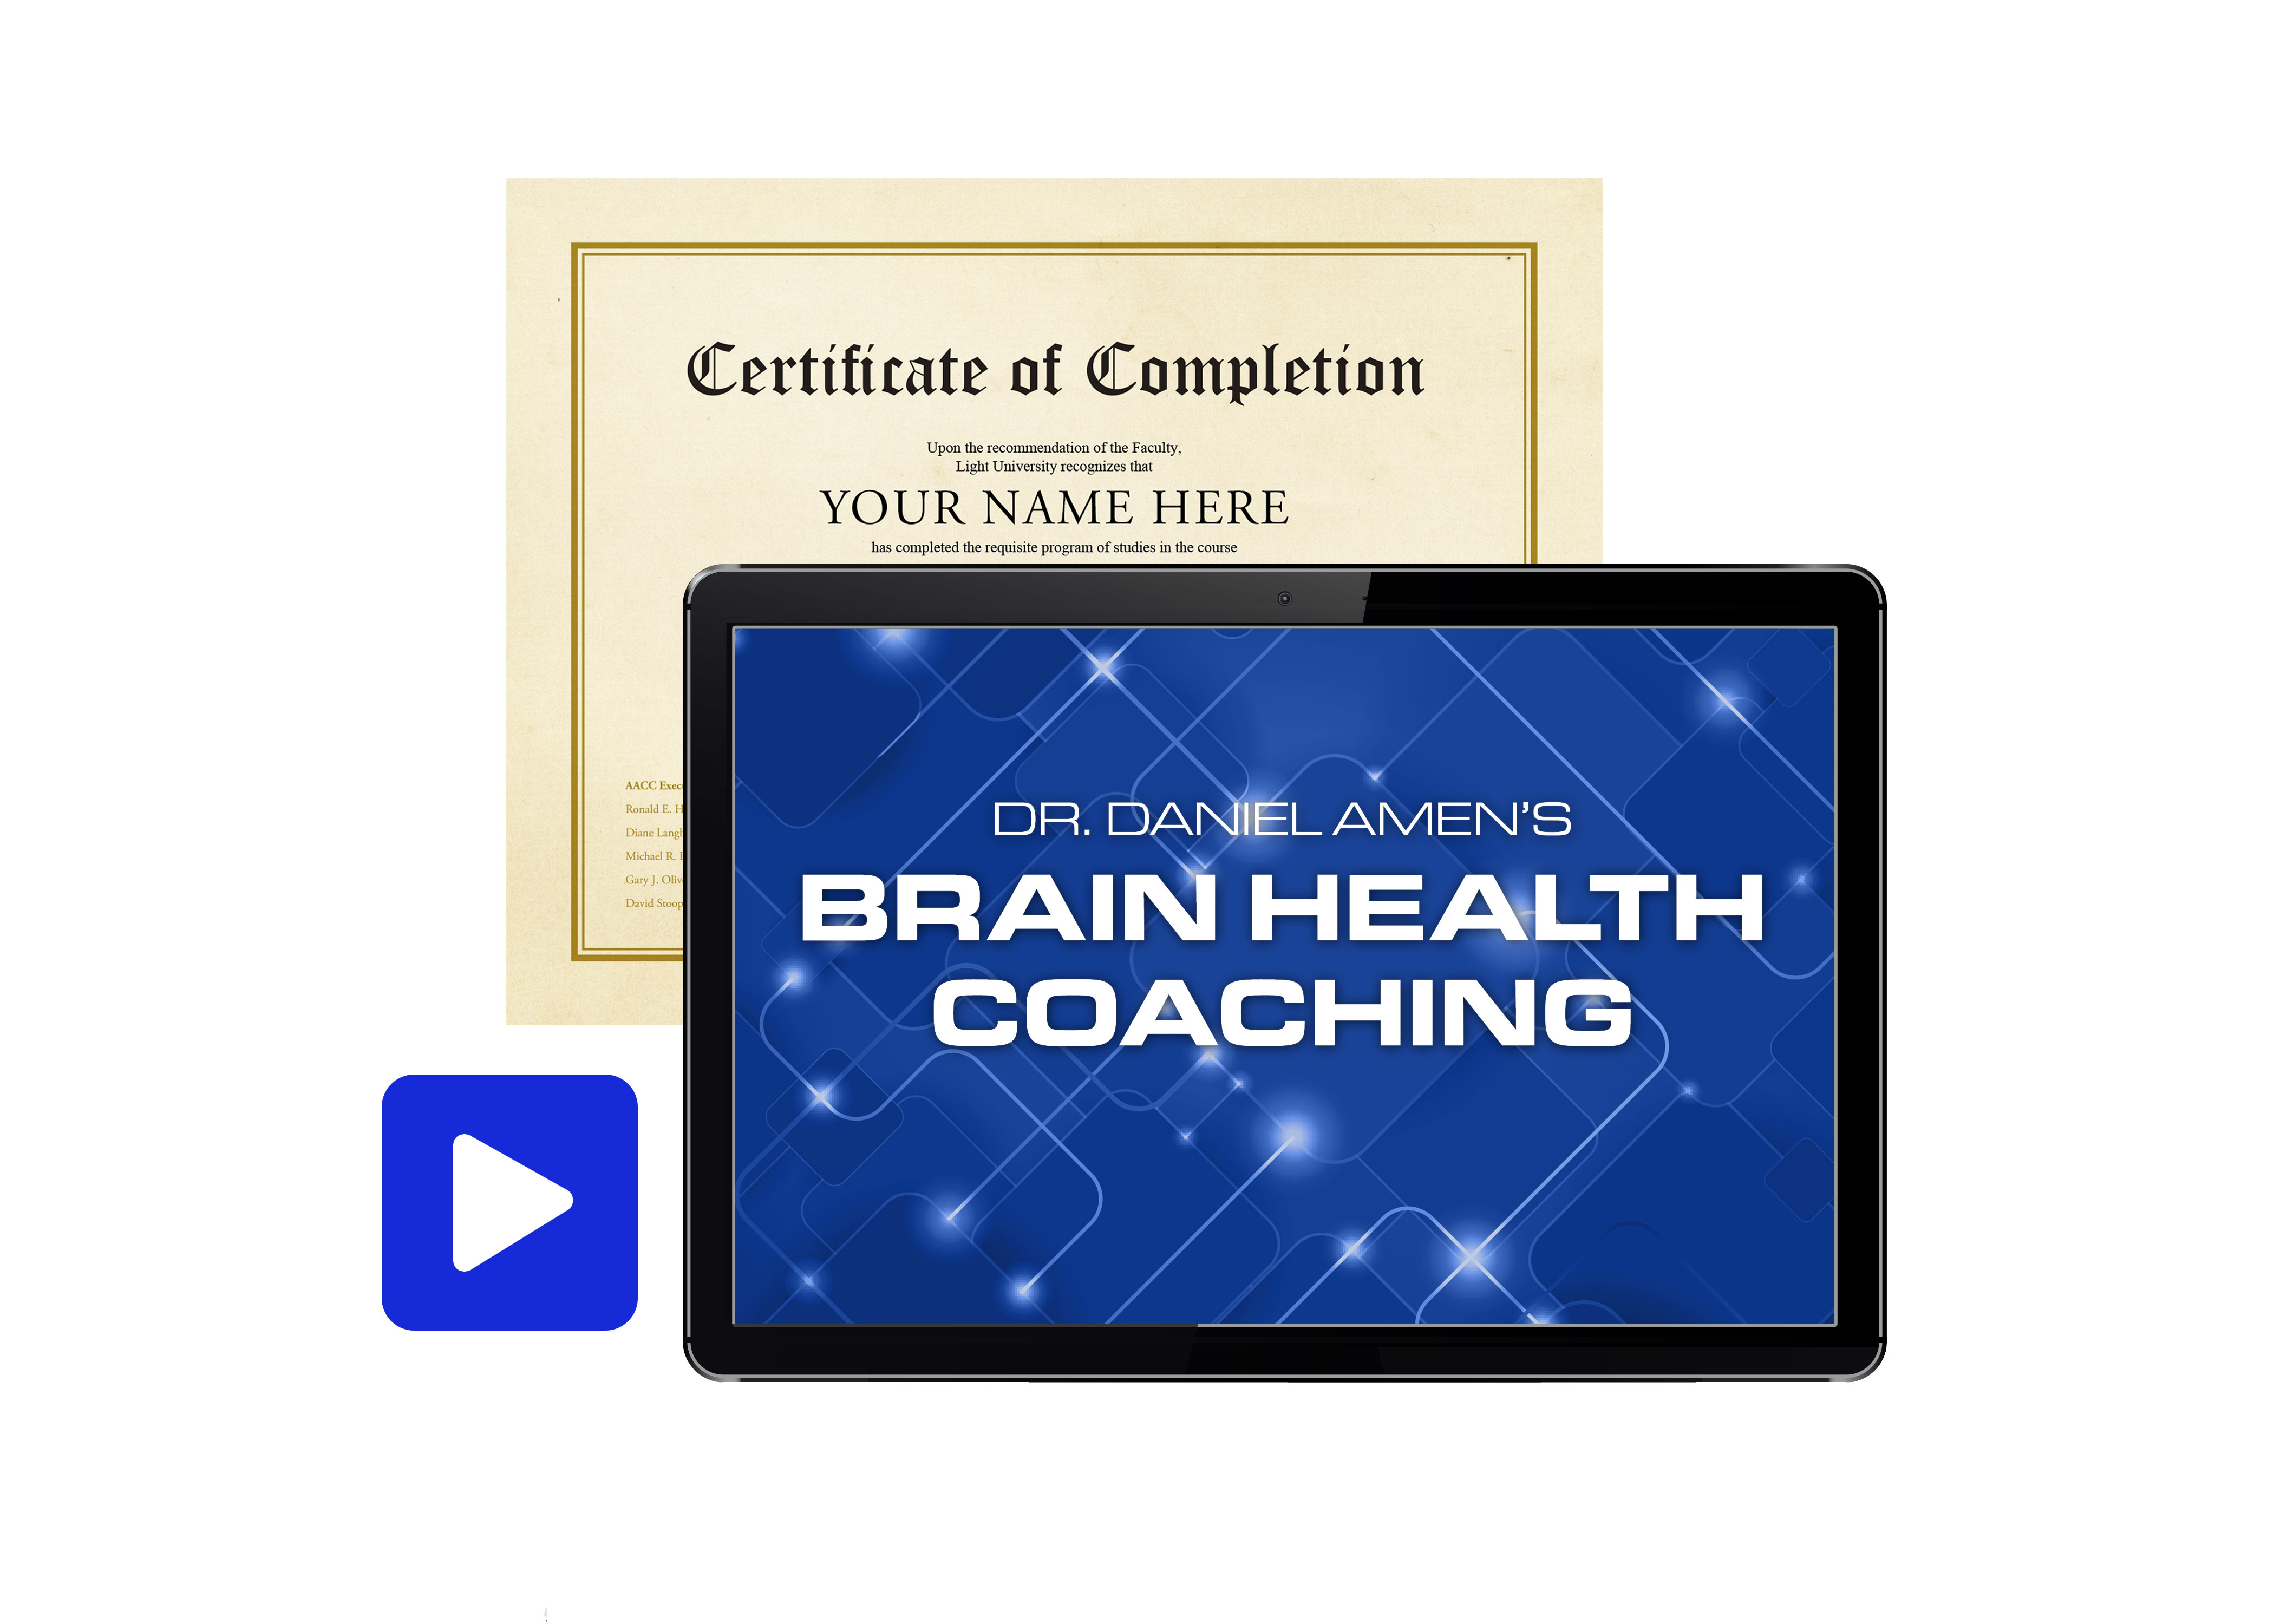 Brain Health Coaching